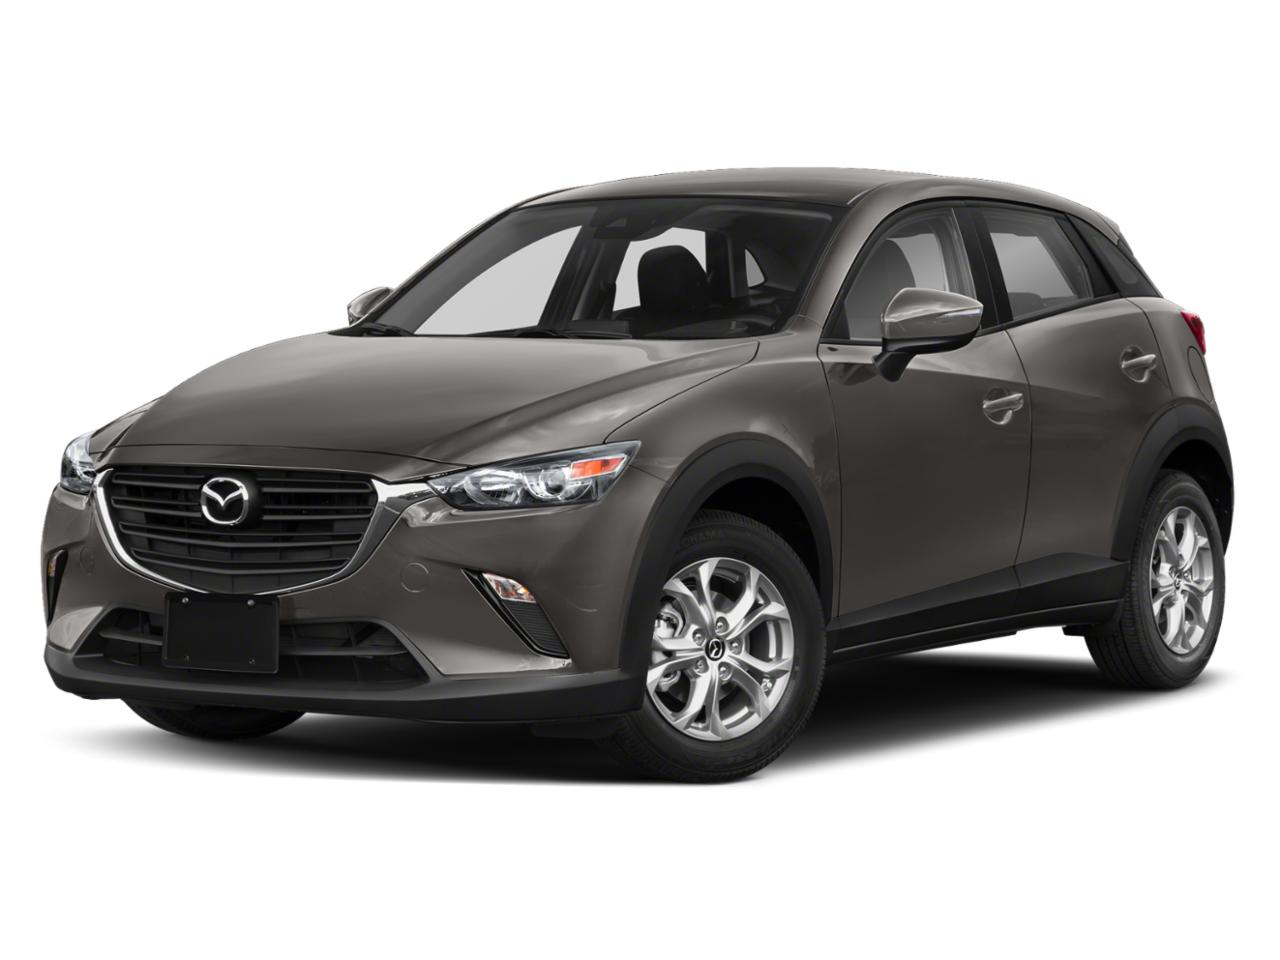 2020 Mazda CX-3 Vehicle Photo in Bowie, MD 20716